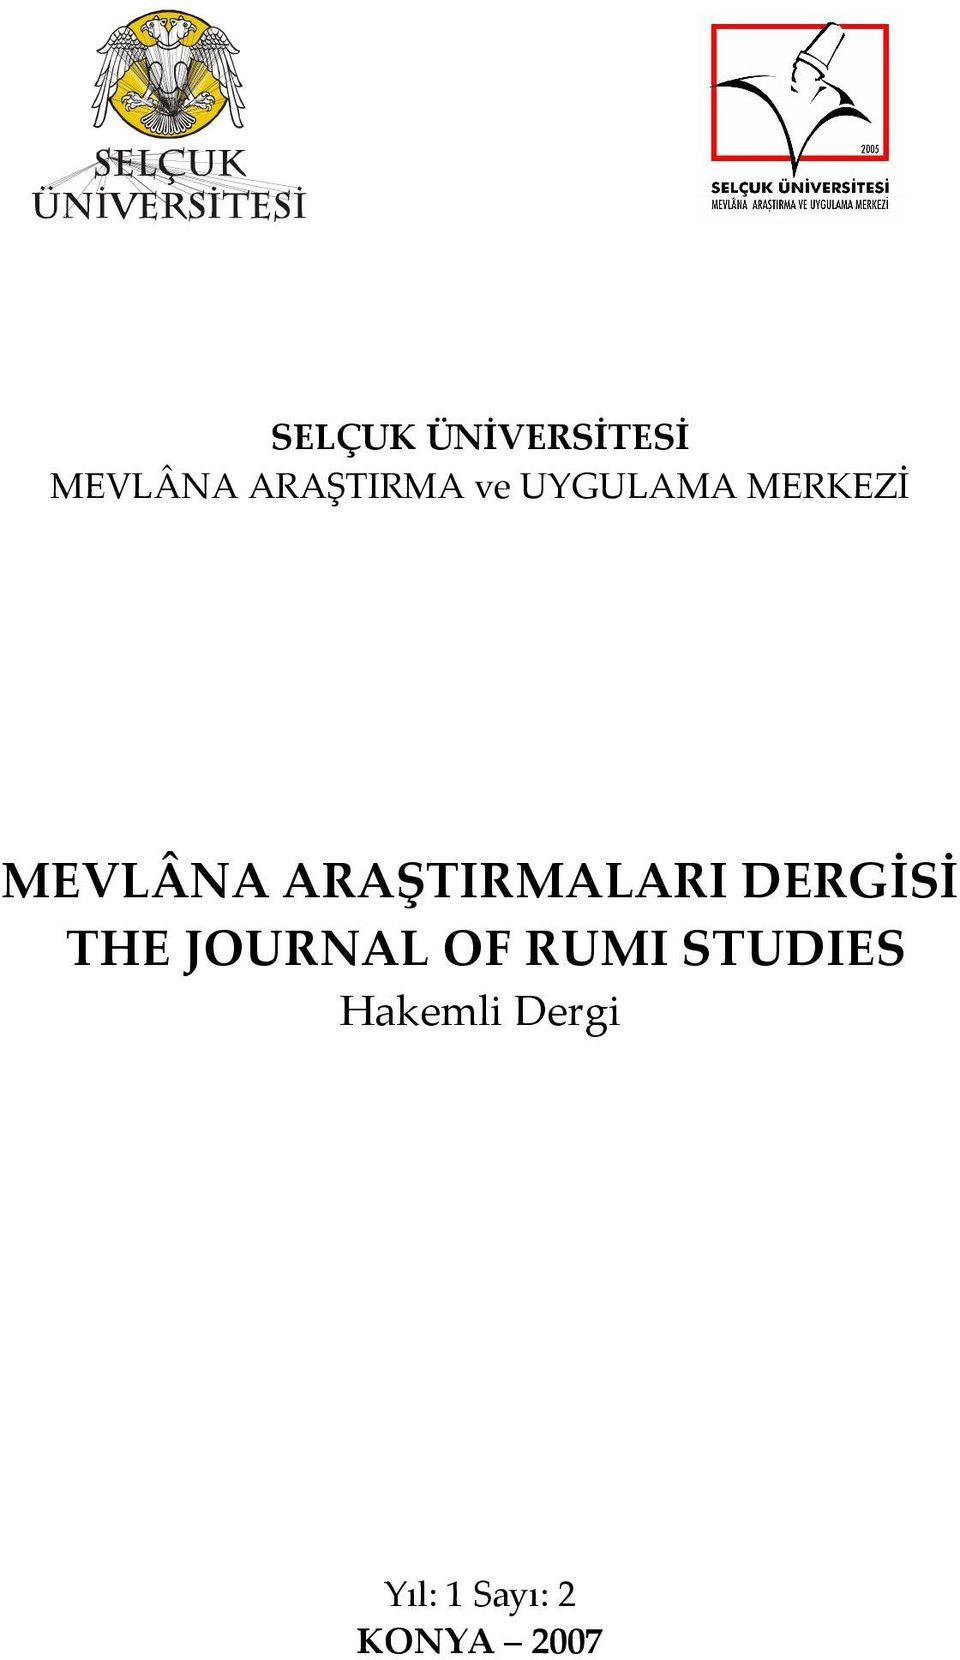 ARAŞTIRMALARI DERGİSİ THE JOURNAL OF